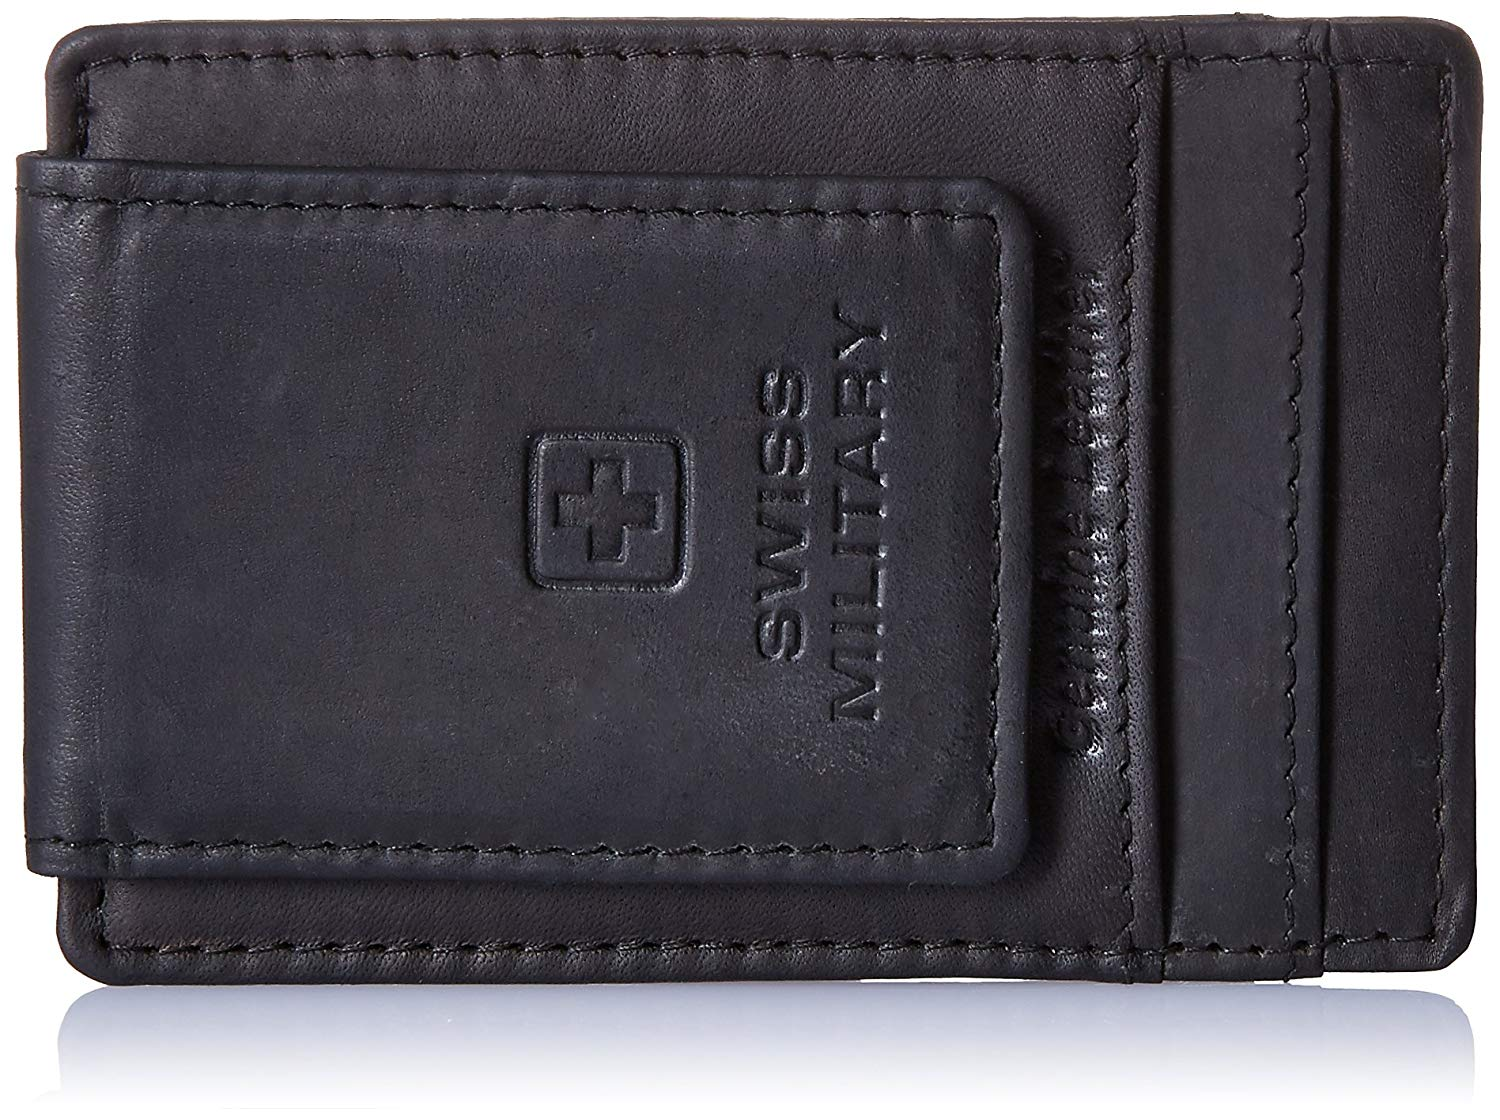 Swiss Military Leather Wallet Brown